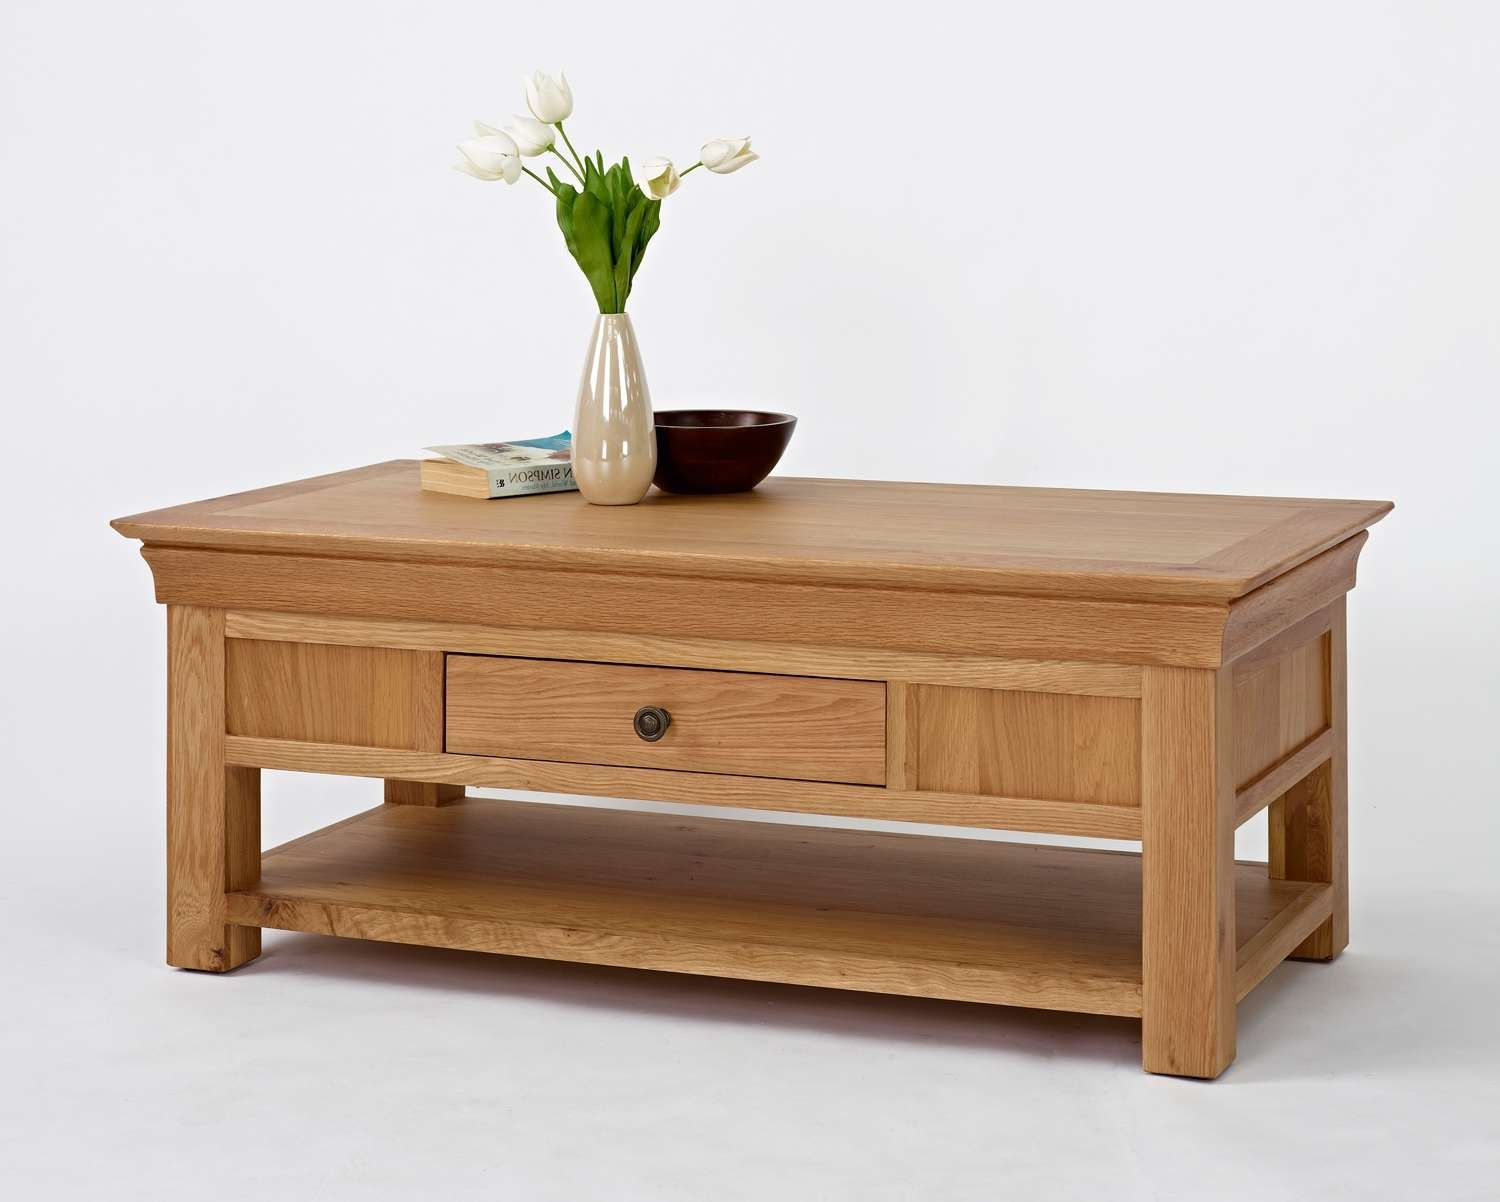 Trendy Oak Veneer Coffee Tables Inside Wimereux Oak Coffee Table With Shelf & Drawer, Uniques Furniture Shop (View 18 of 20)